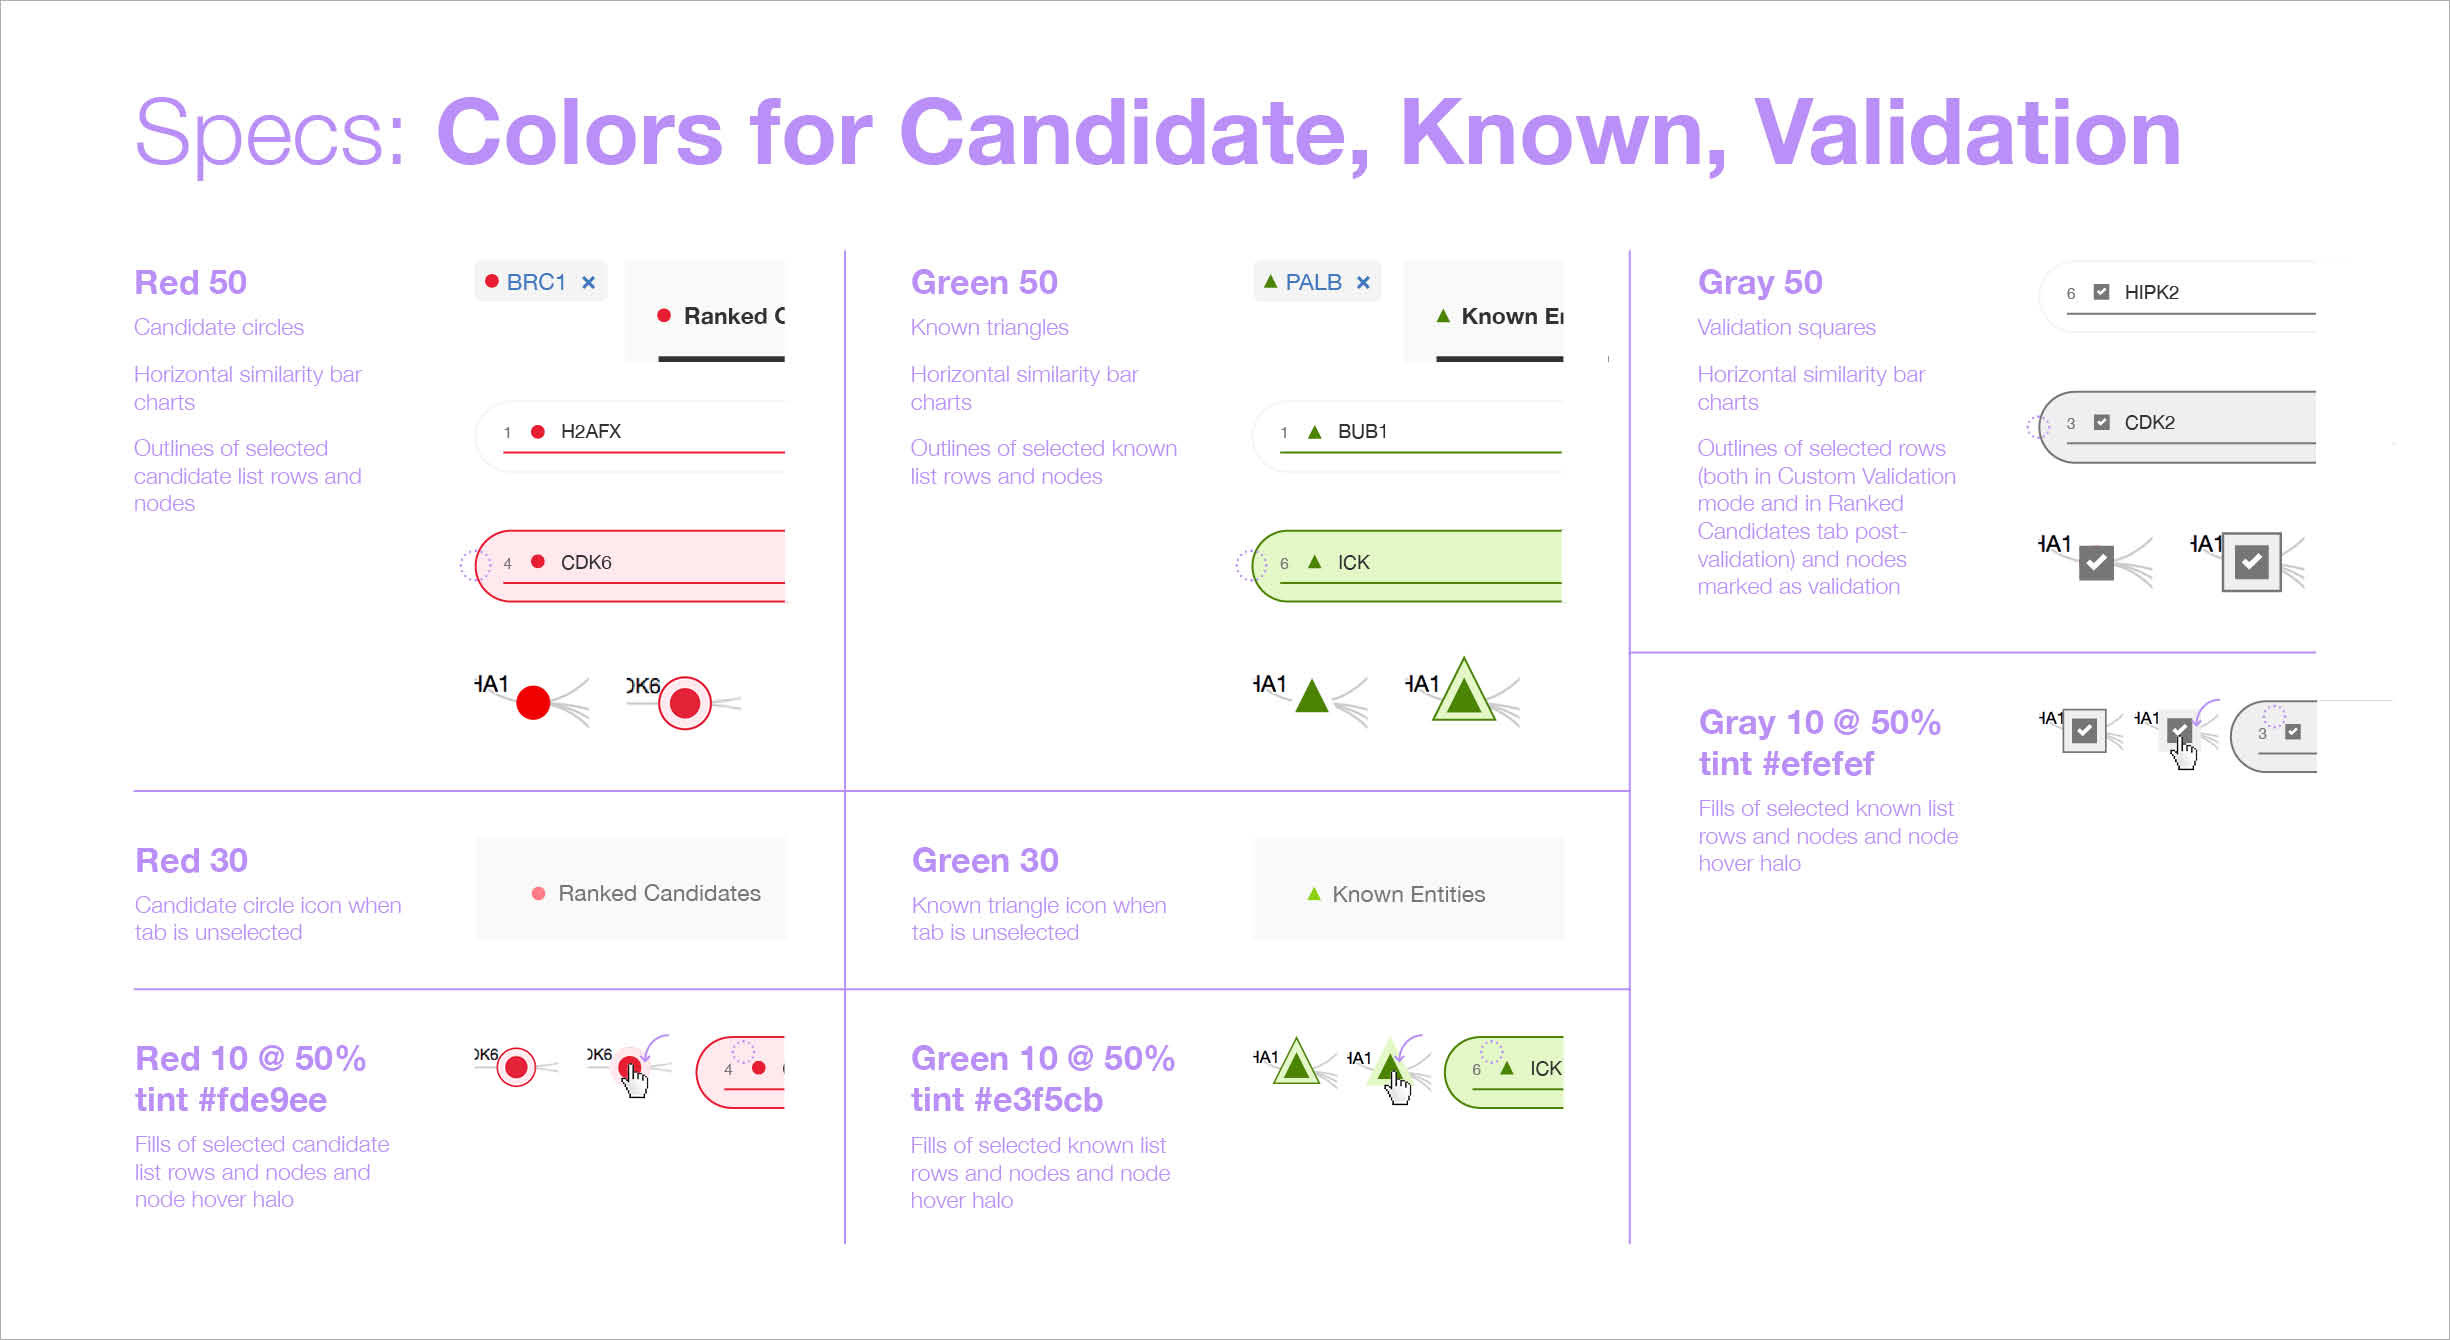 Colors of the candidate, known, and validation entities as redlines.